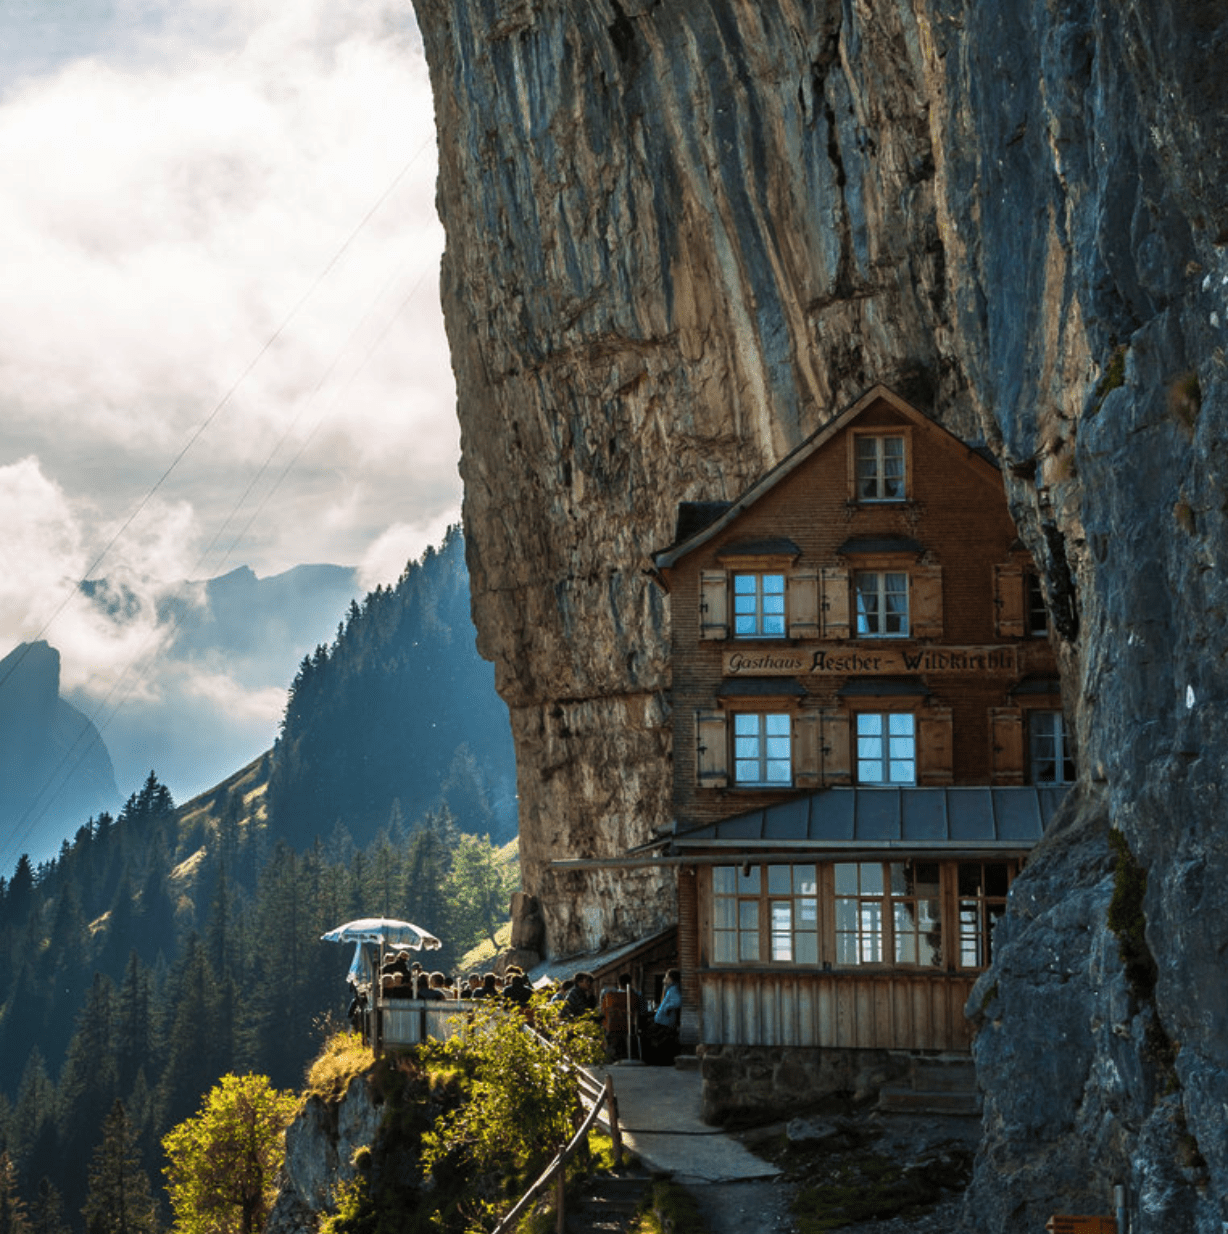 Aescher Restaurant clinging to a mountainside in Switzerland